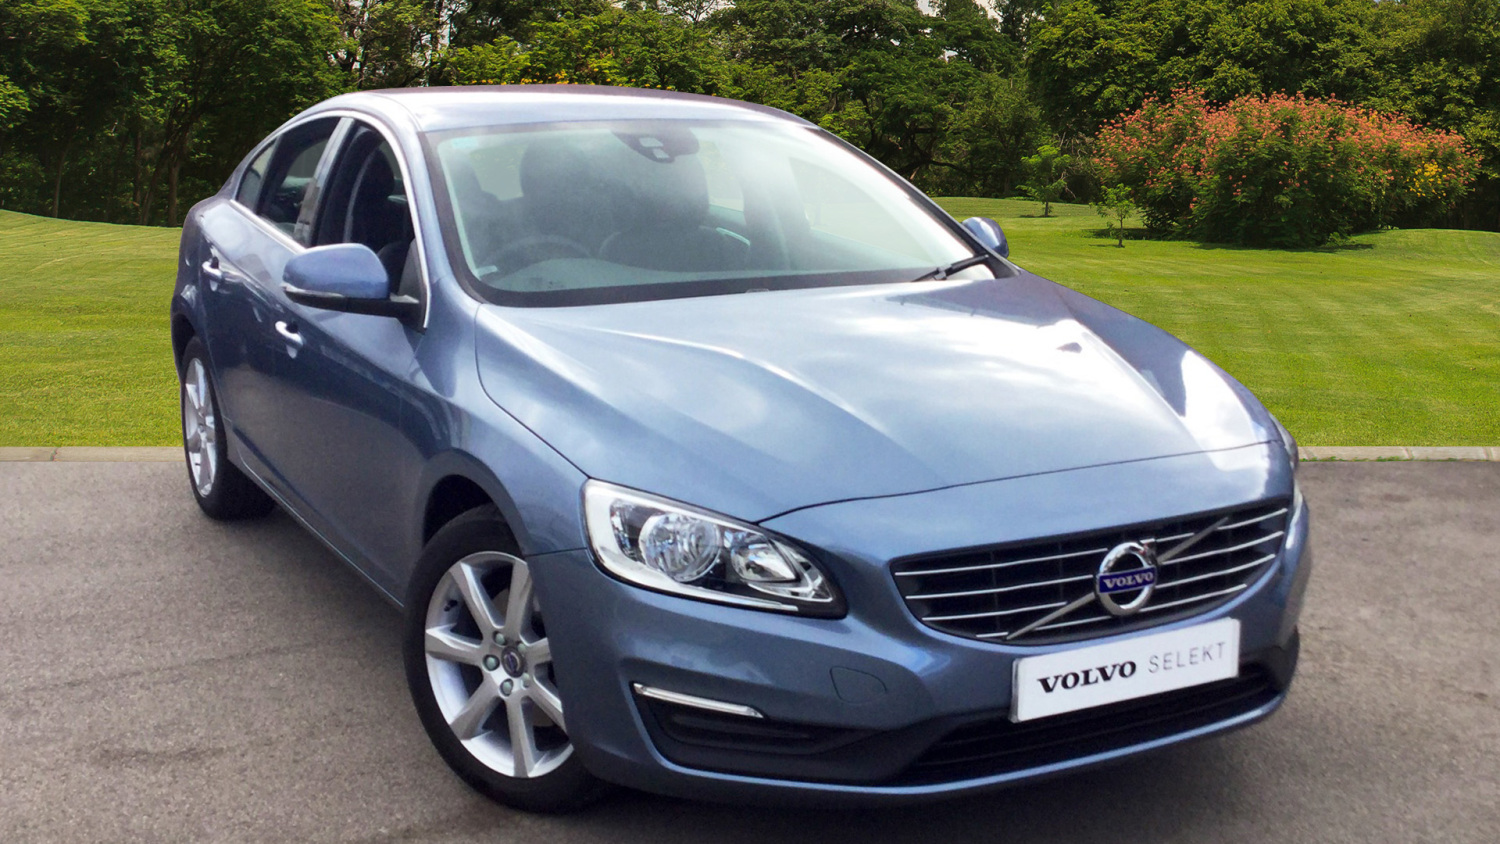 used volvo s60 d3 150 se nav 4dr leather diesel saloon for sale in scotland macklin motors. Black Bedroom Furniture Sets. Home Design Ideas